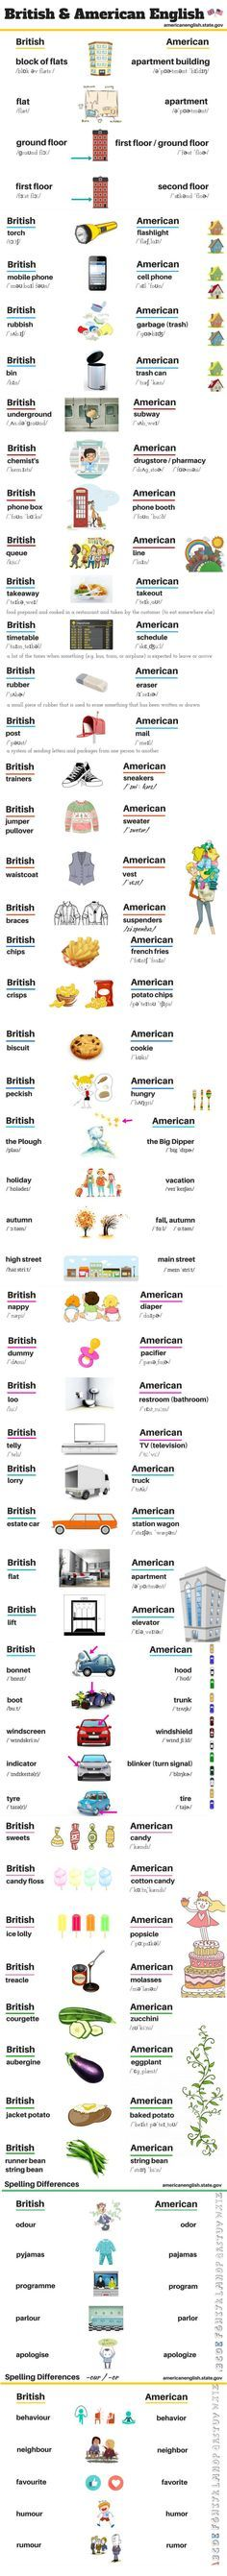 This Infographic Shows You The Different Between British and American English